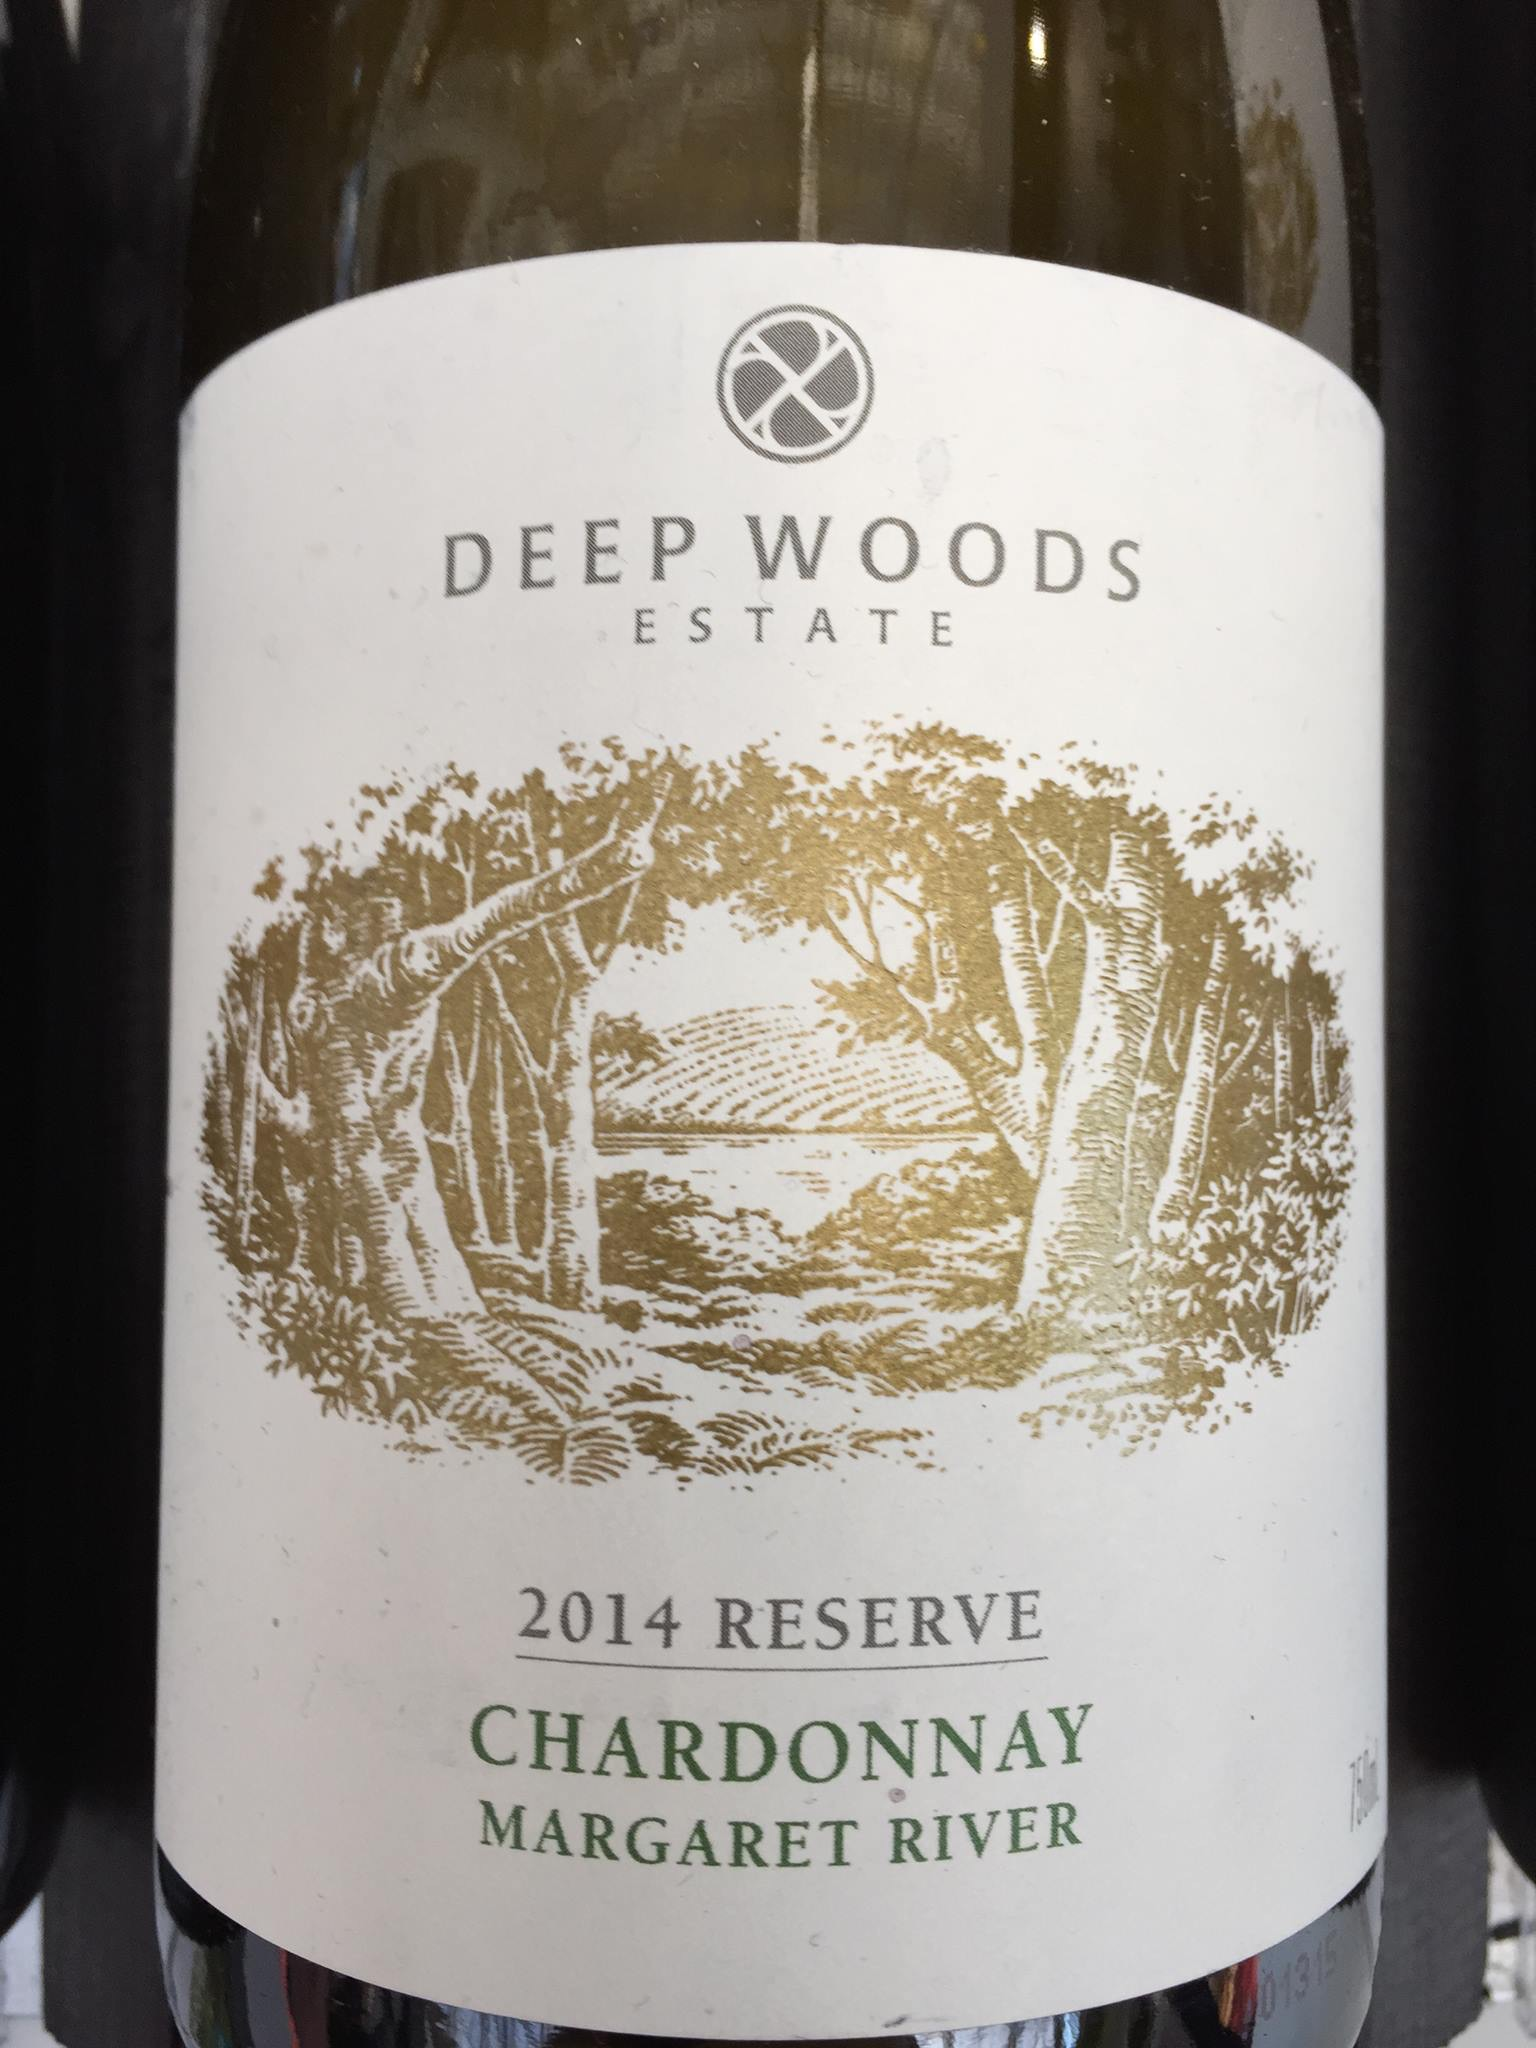 Deep Woods Estate – Chardonnay 2014 Reserve – Margaret River